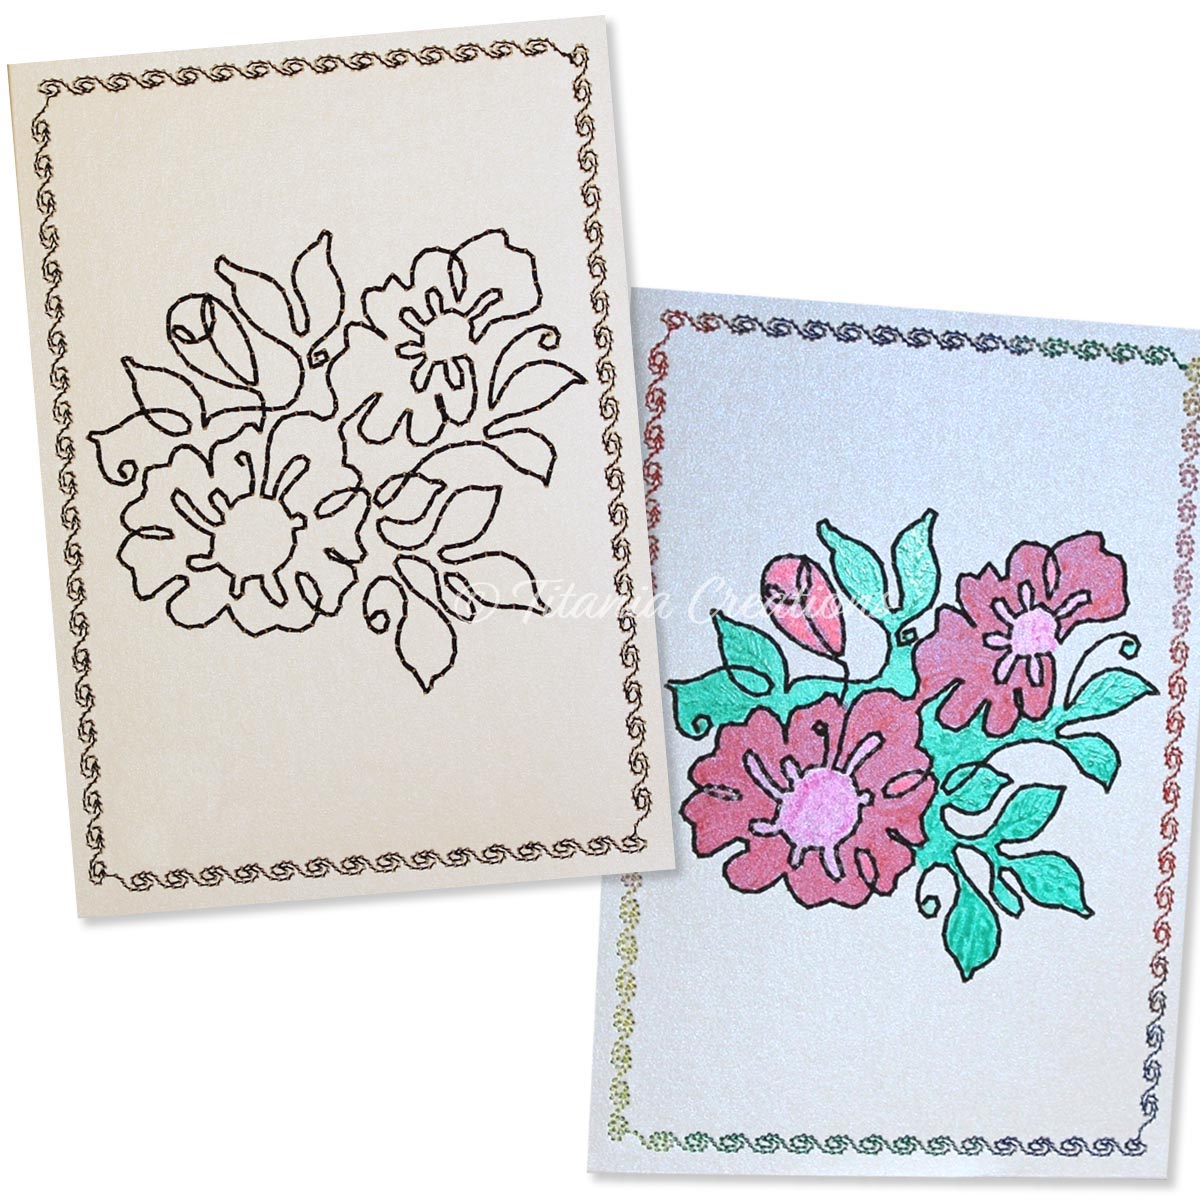 Simply Floral 02 Card Stock Design 5x7